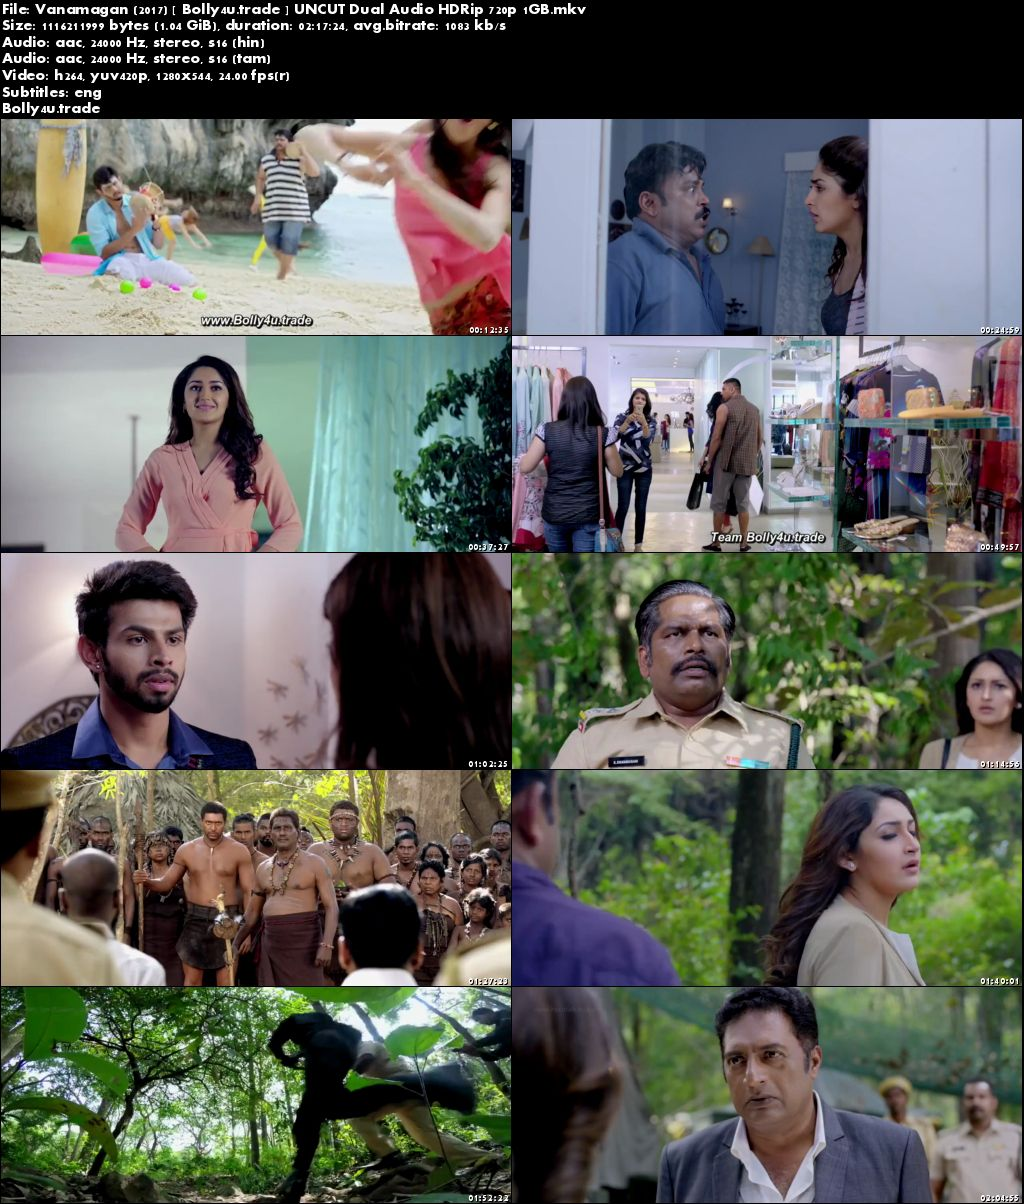 Vanamagan 2017 HDRip 1Gb UNCUT Hindi Dubbed Dual Audio 720p Download